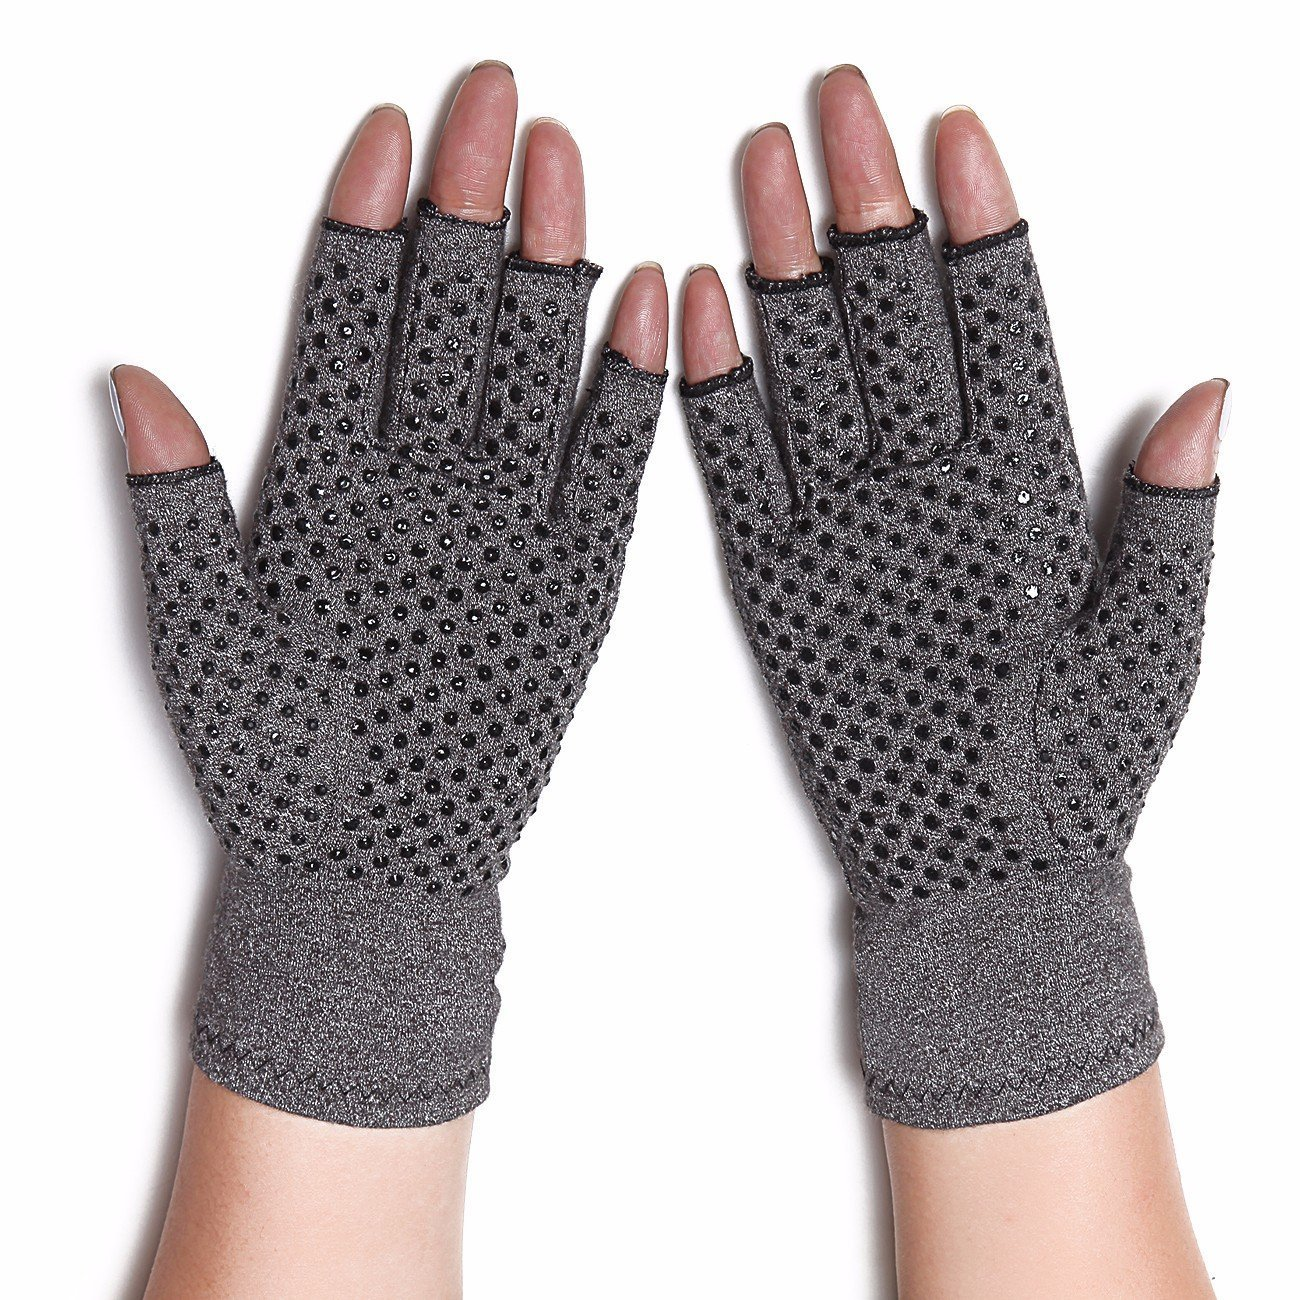 MicroHealthOne Compression Circulation Fingerless Warming Arthritis Gloves with Grips, Gray